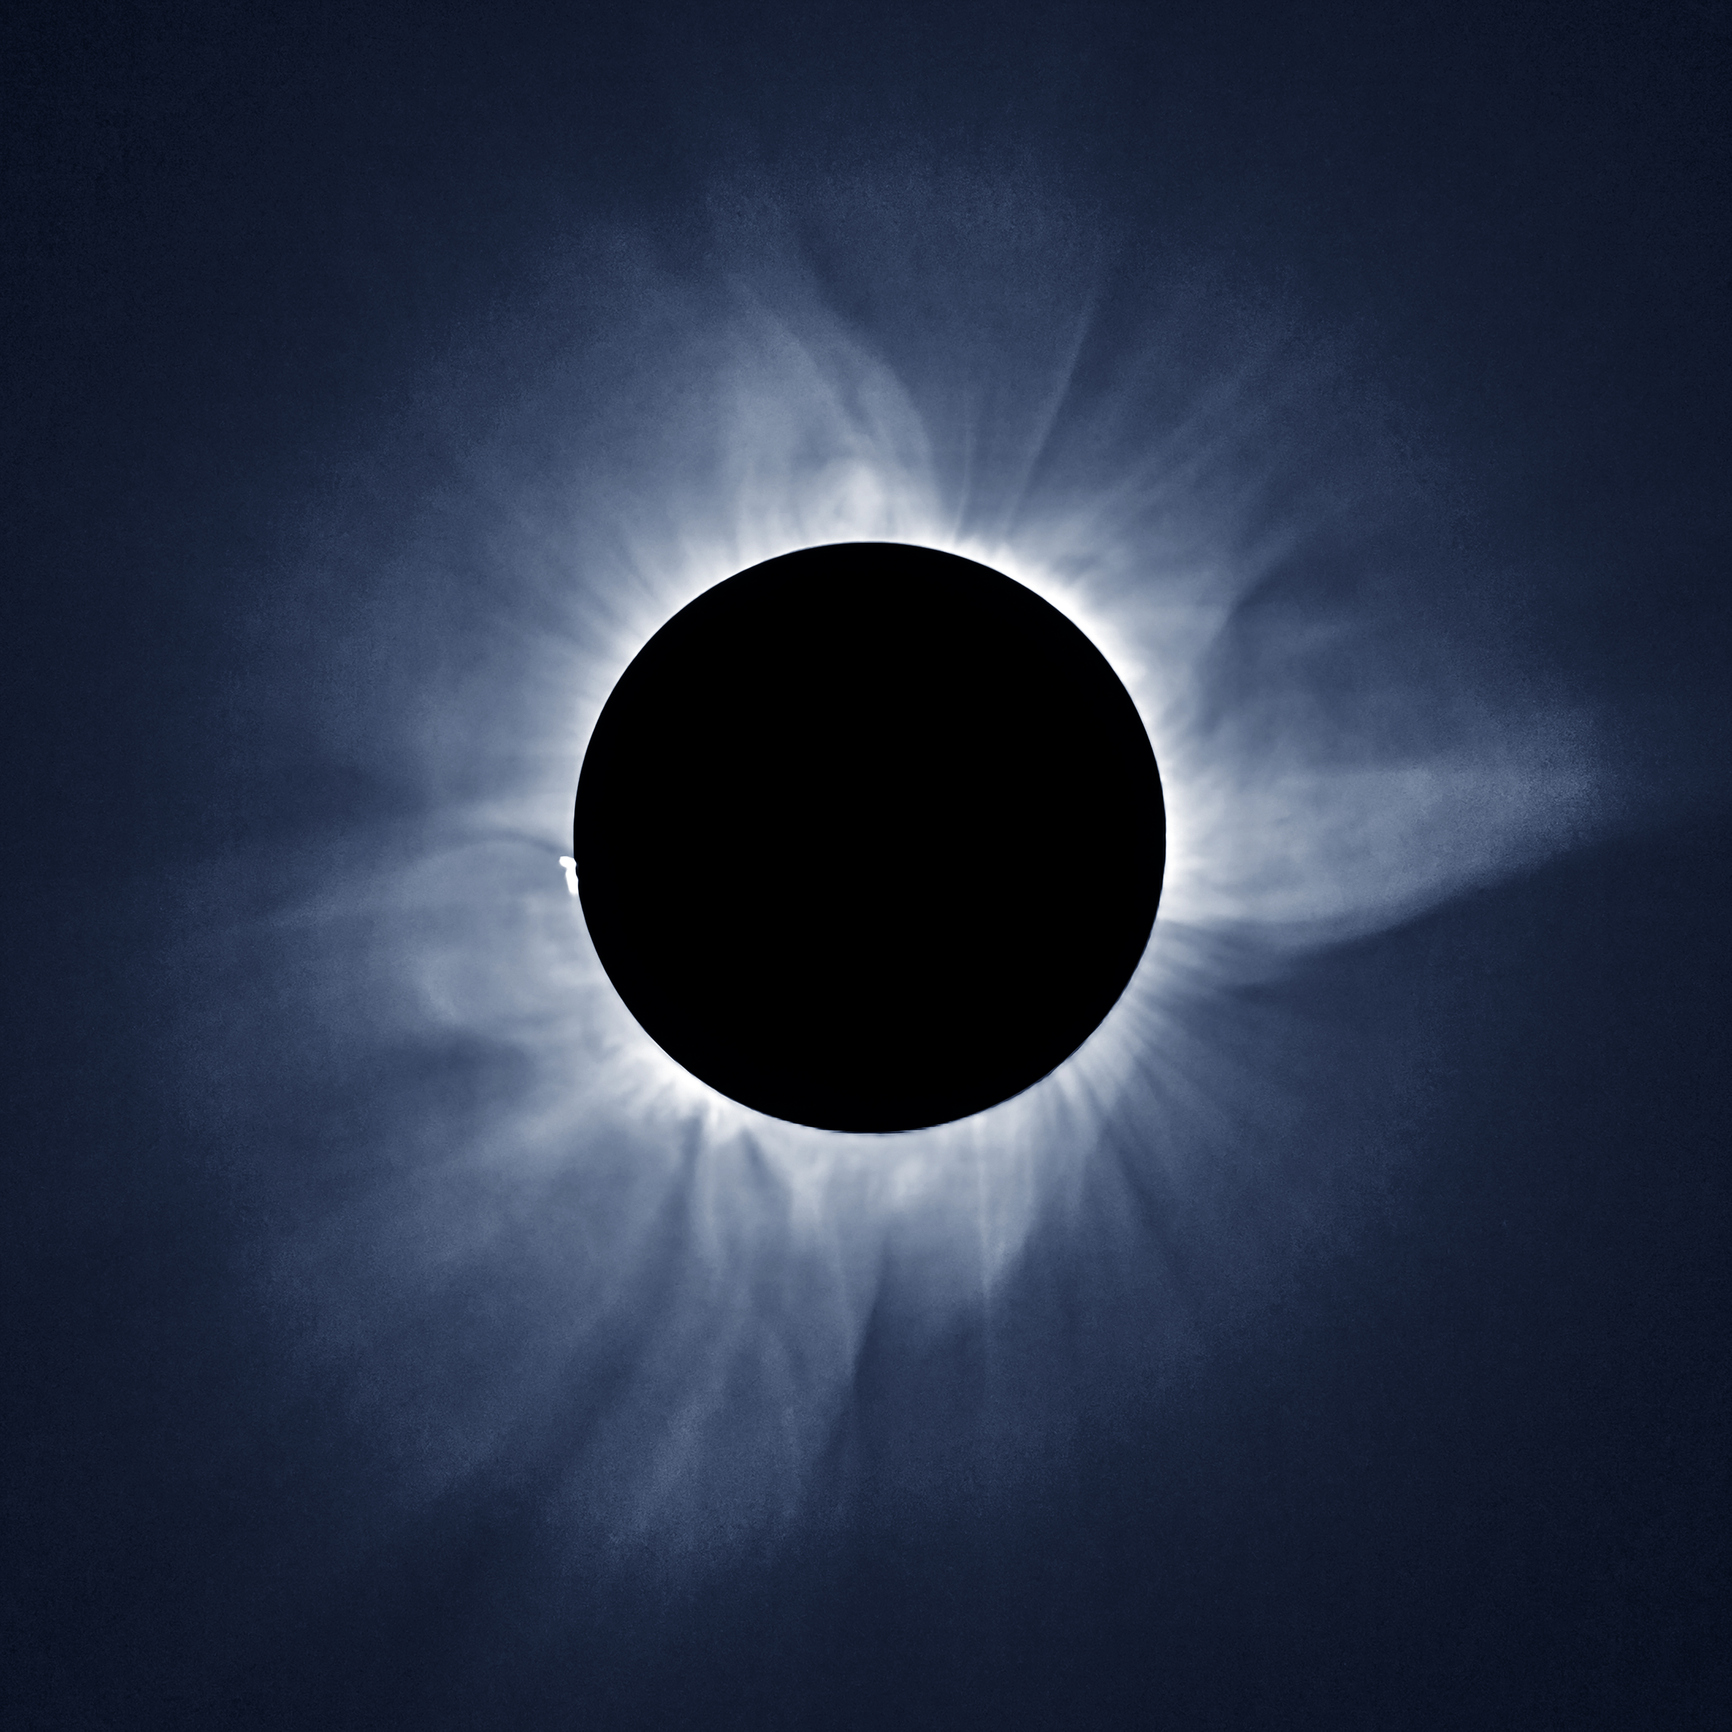 Total solar eclipse and sun Corona, on March 9 2016 in Indonesia